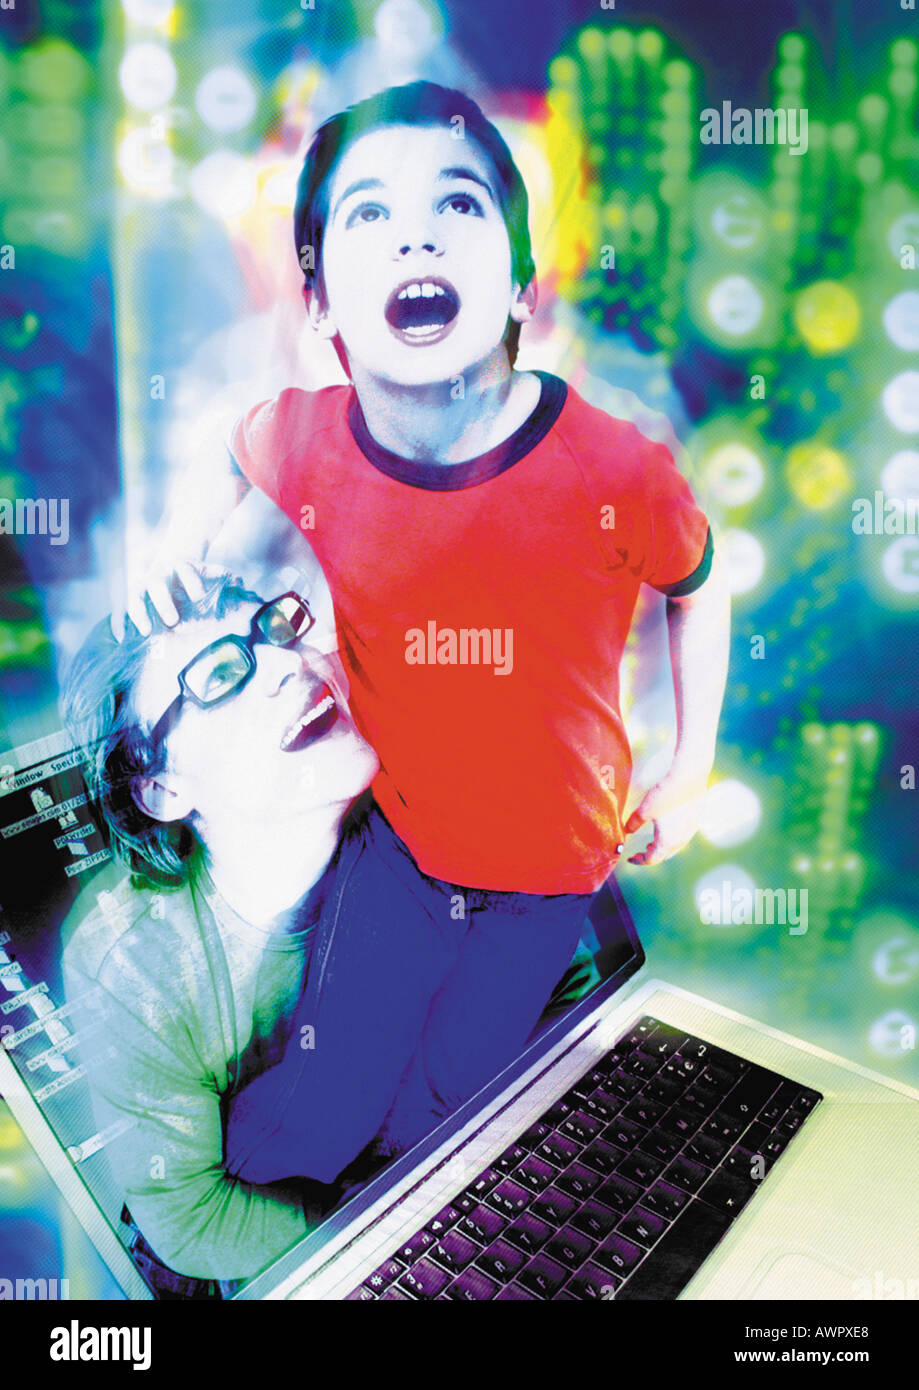 Child emerging from laptop entering into cyberspace, man lifting child, digital composite. - Stock Image